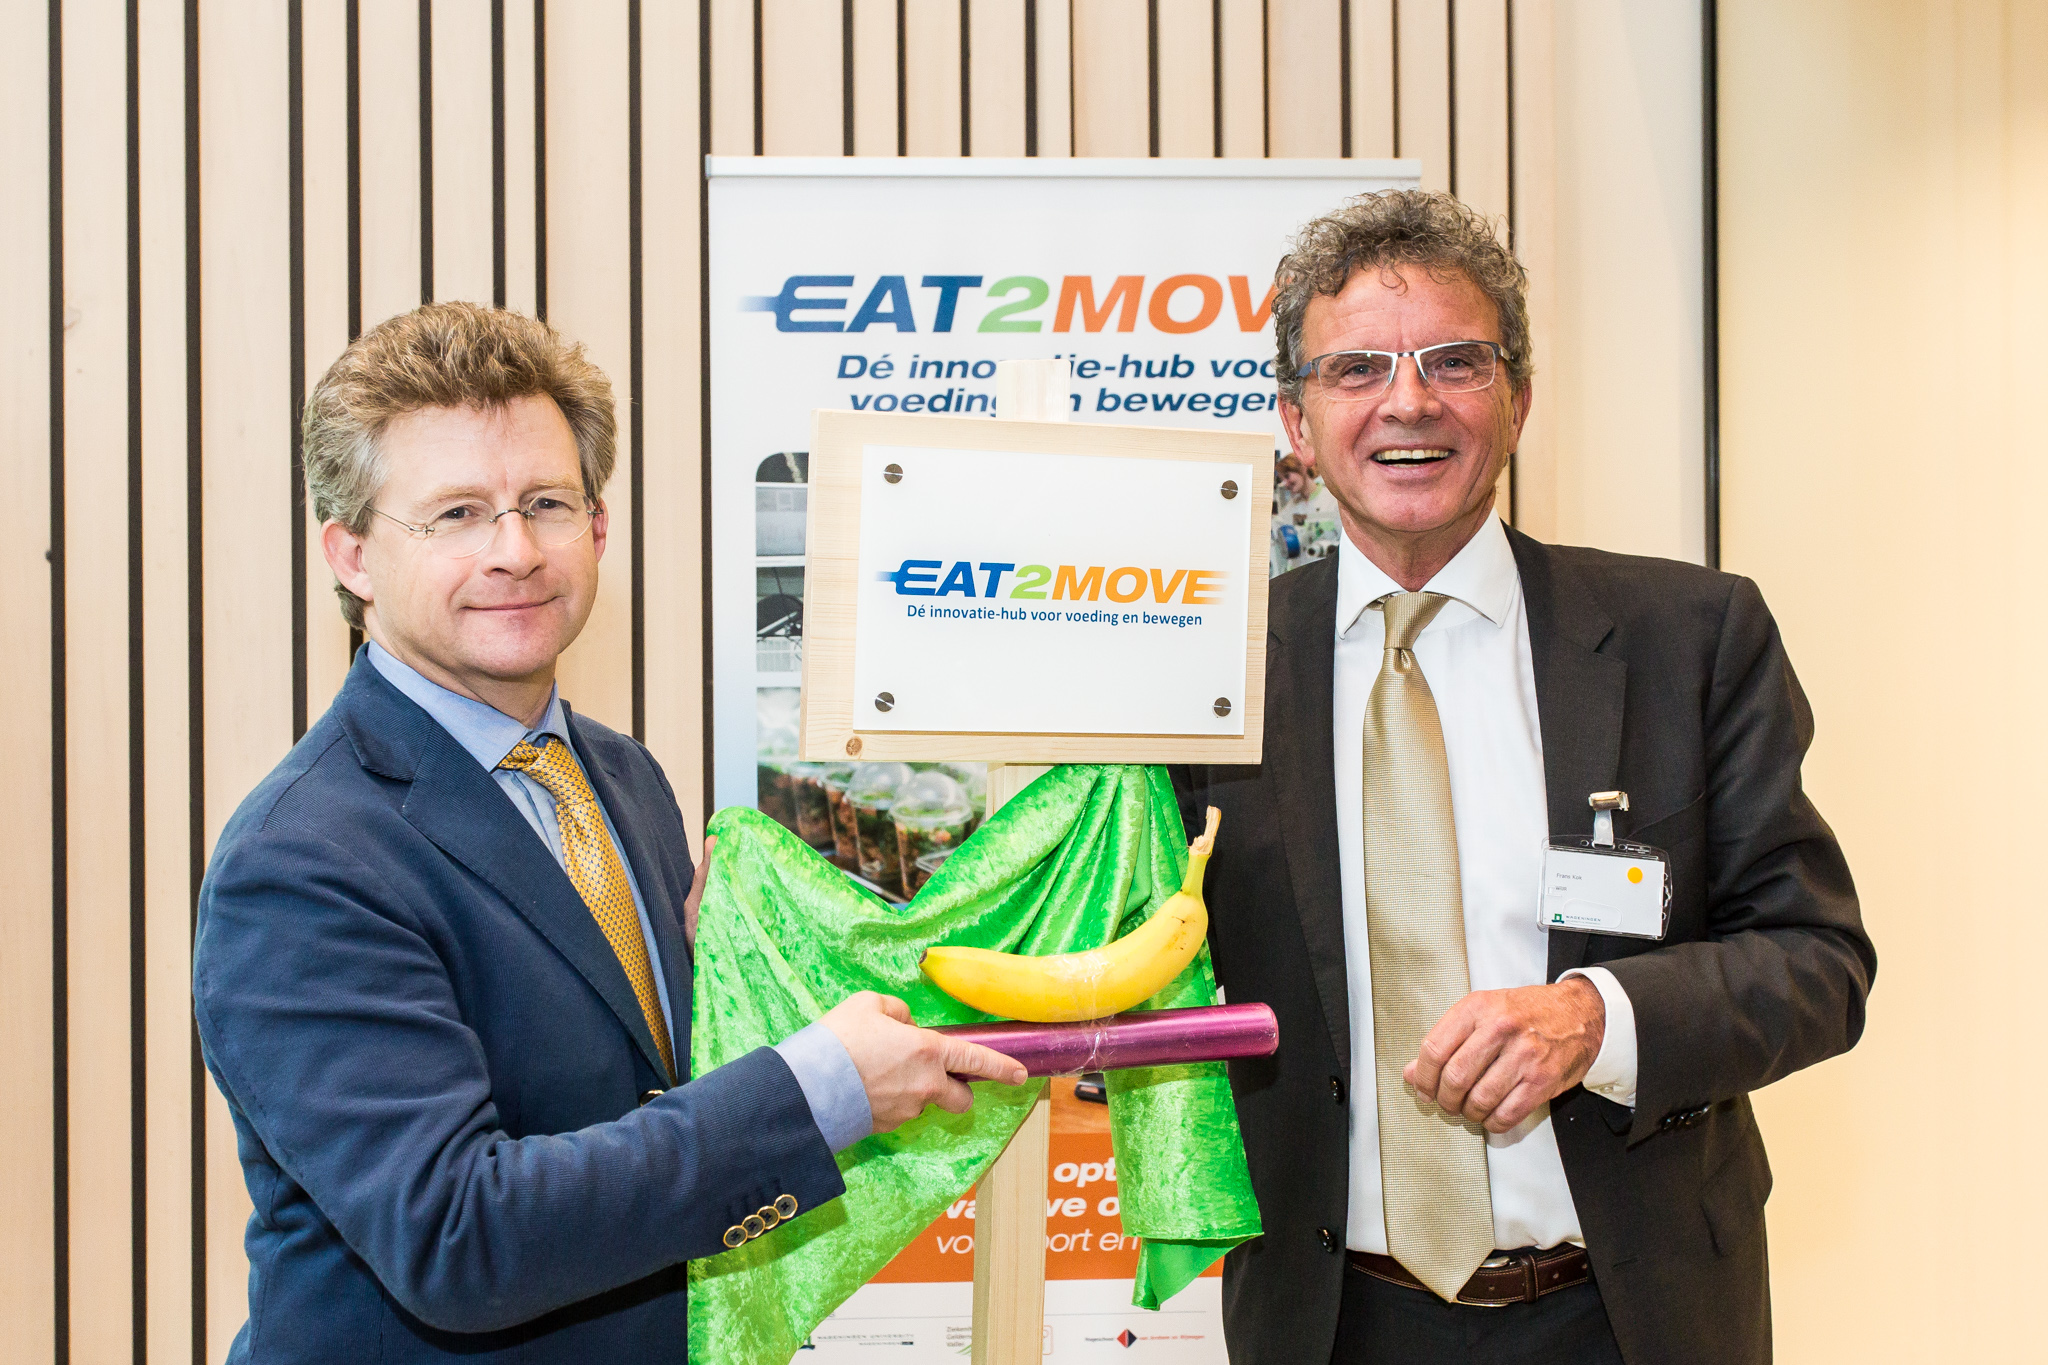 eat2move-start-innovatie-hub-srgb-screen-only-0100